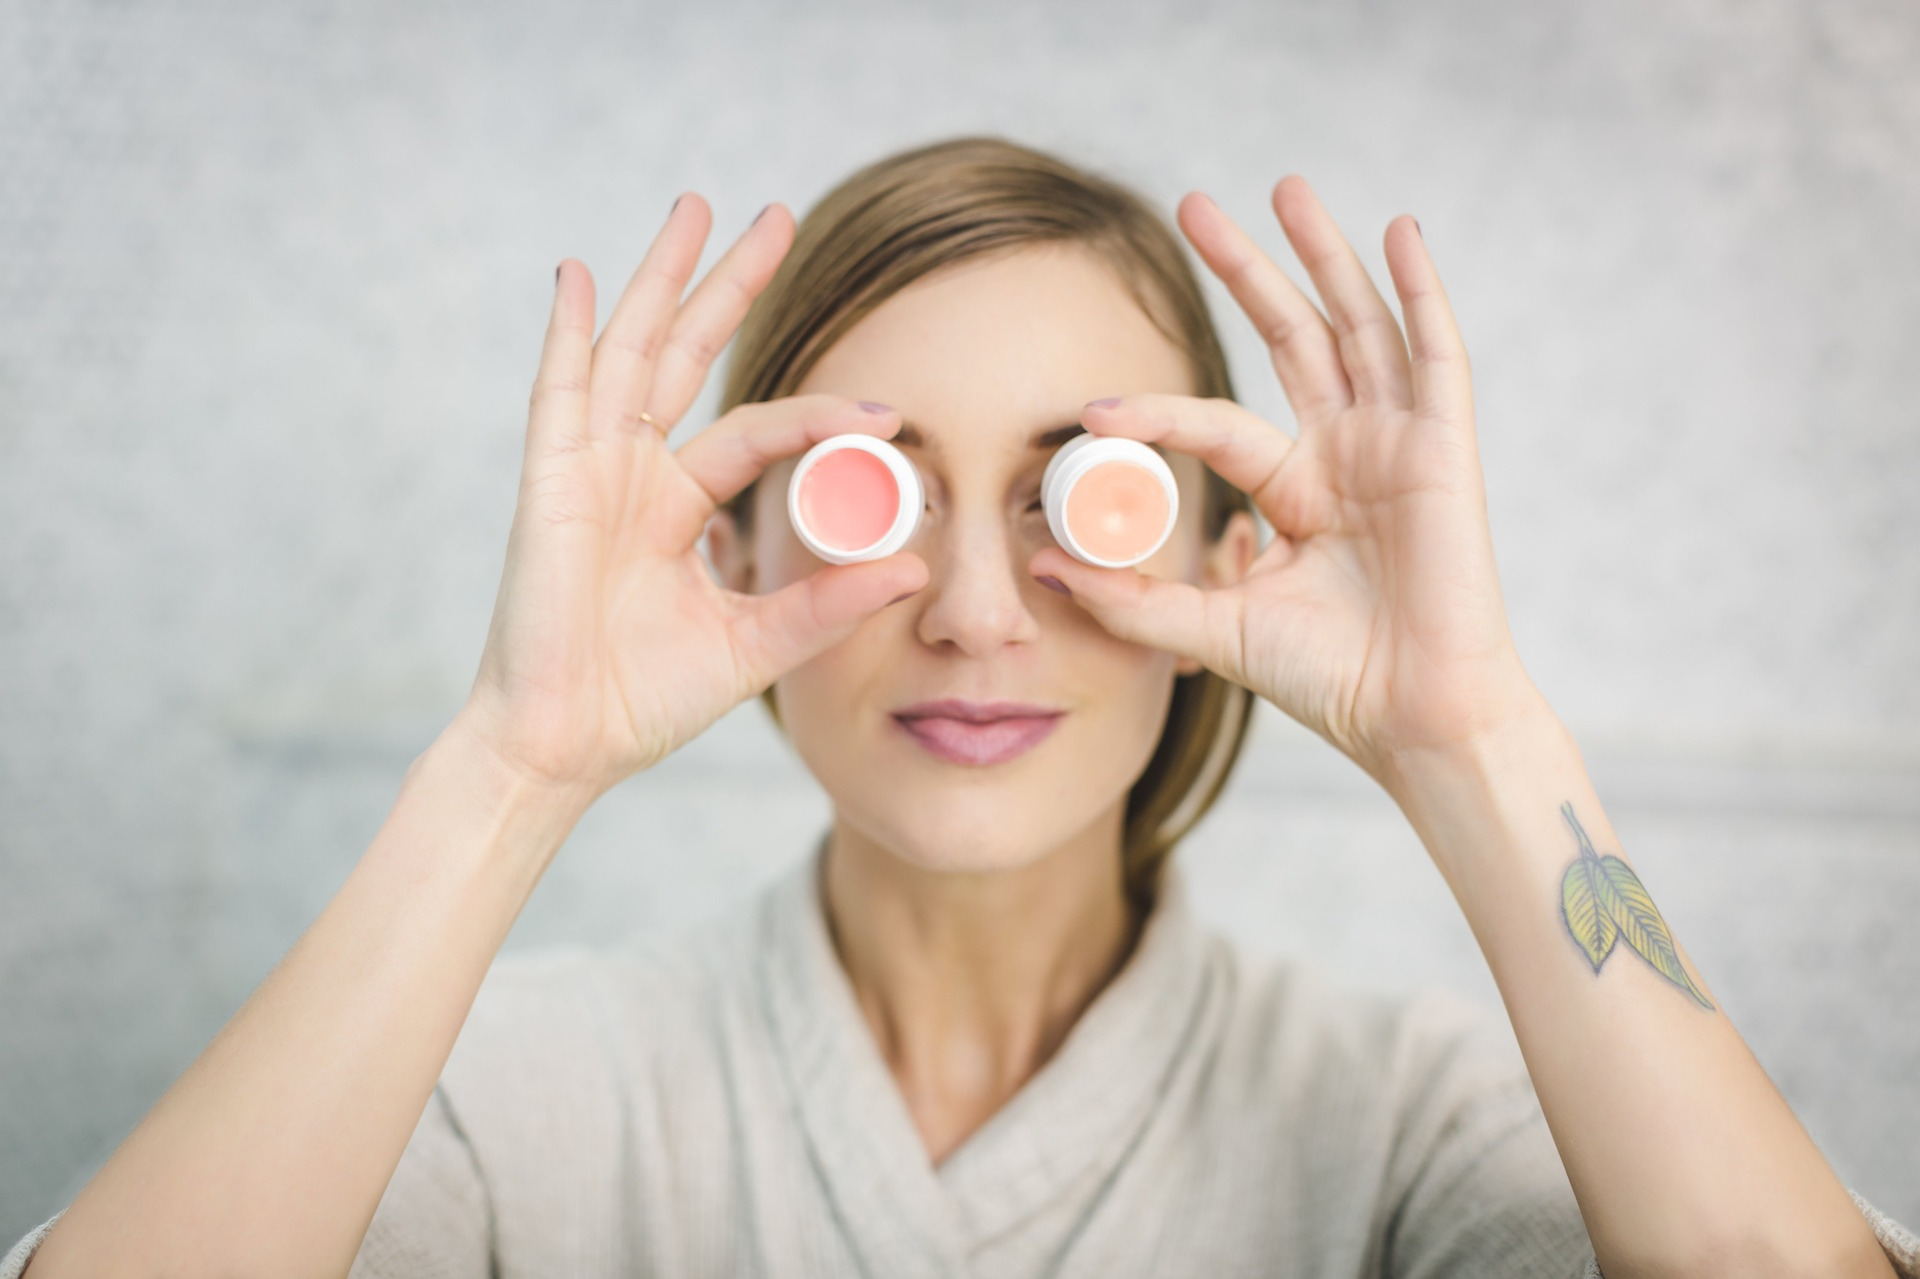 Girl wearing a bathrobe is holding a 2 shades of lip balm and put i on her eyes